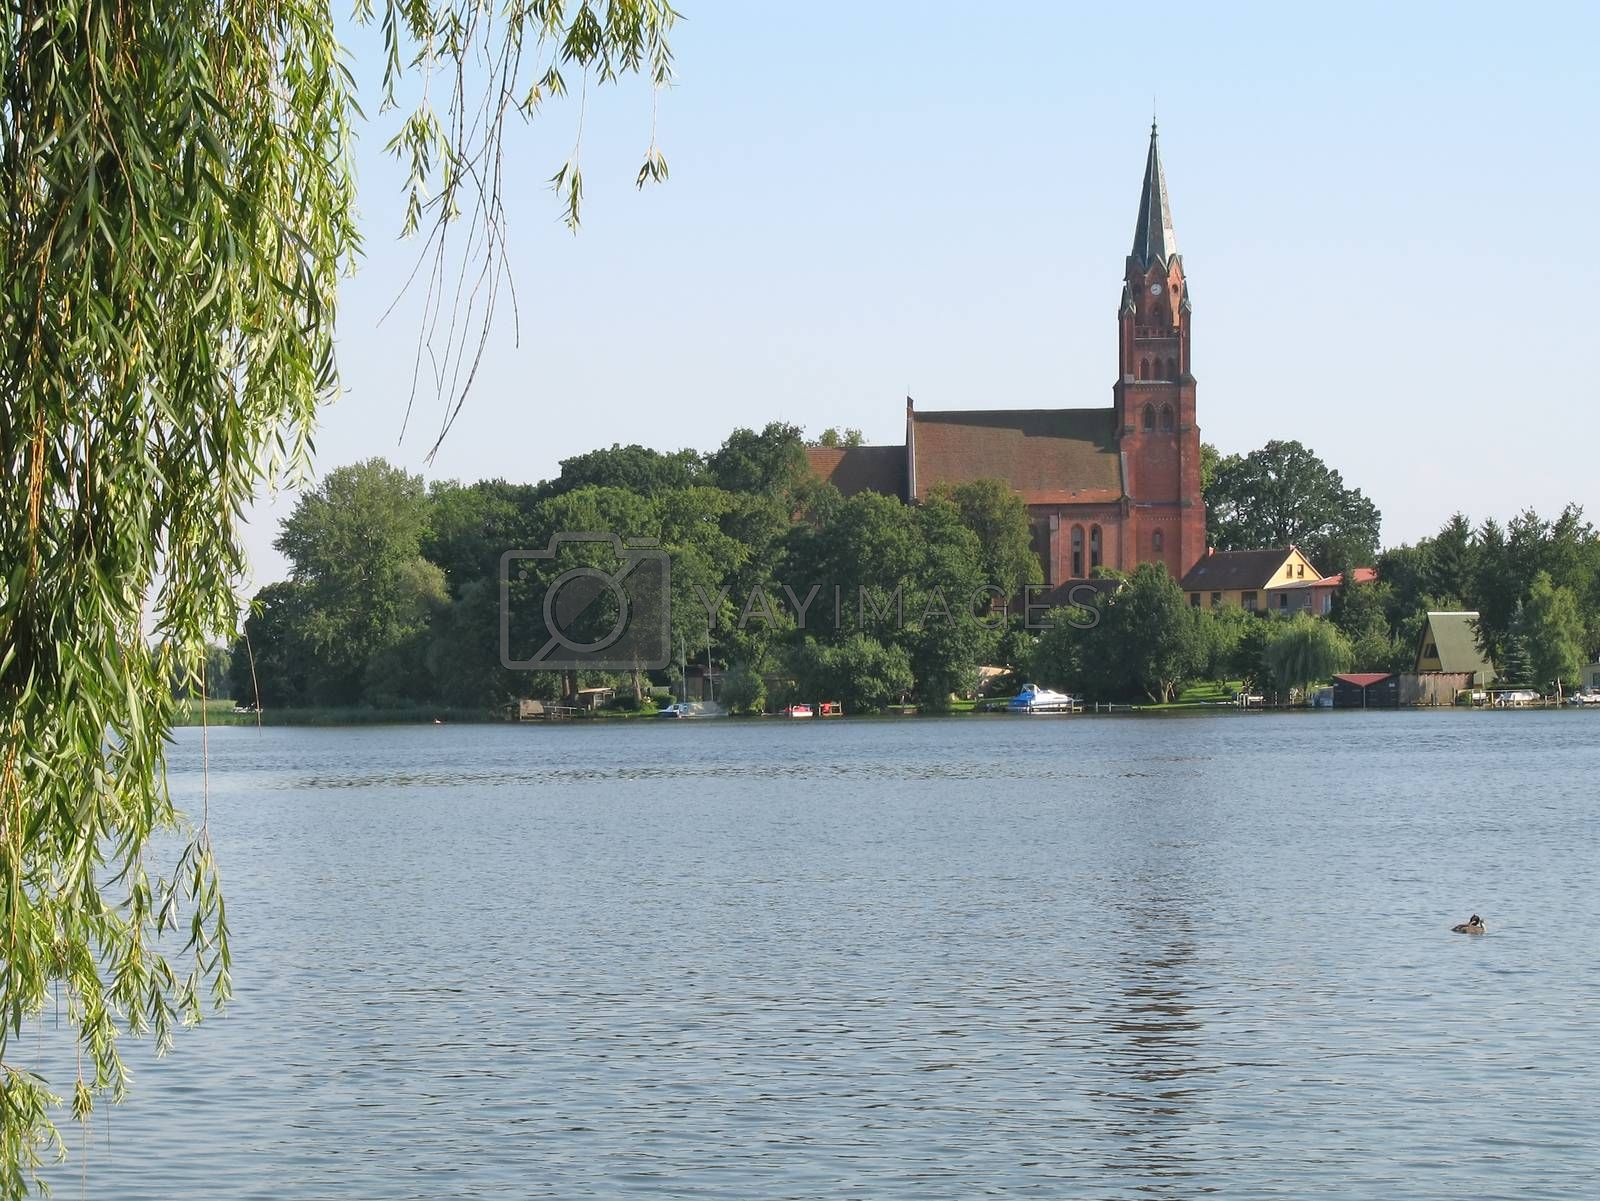 View onto the lake Mueritz and St. Marien Church in Roebel, Mecklenburg-Western Pomerania, Germany.